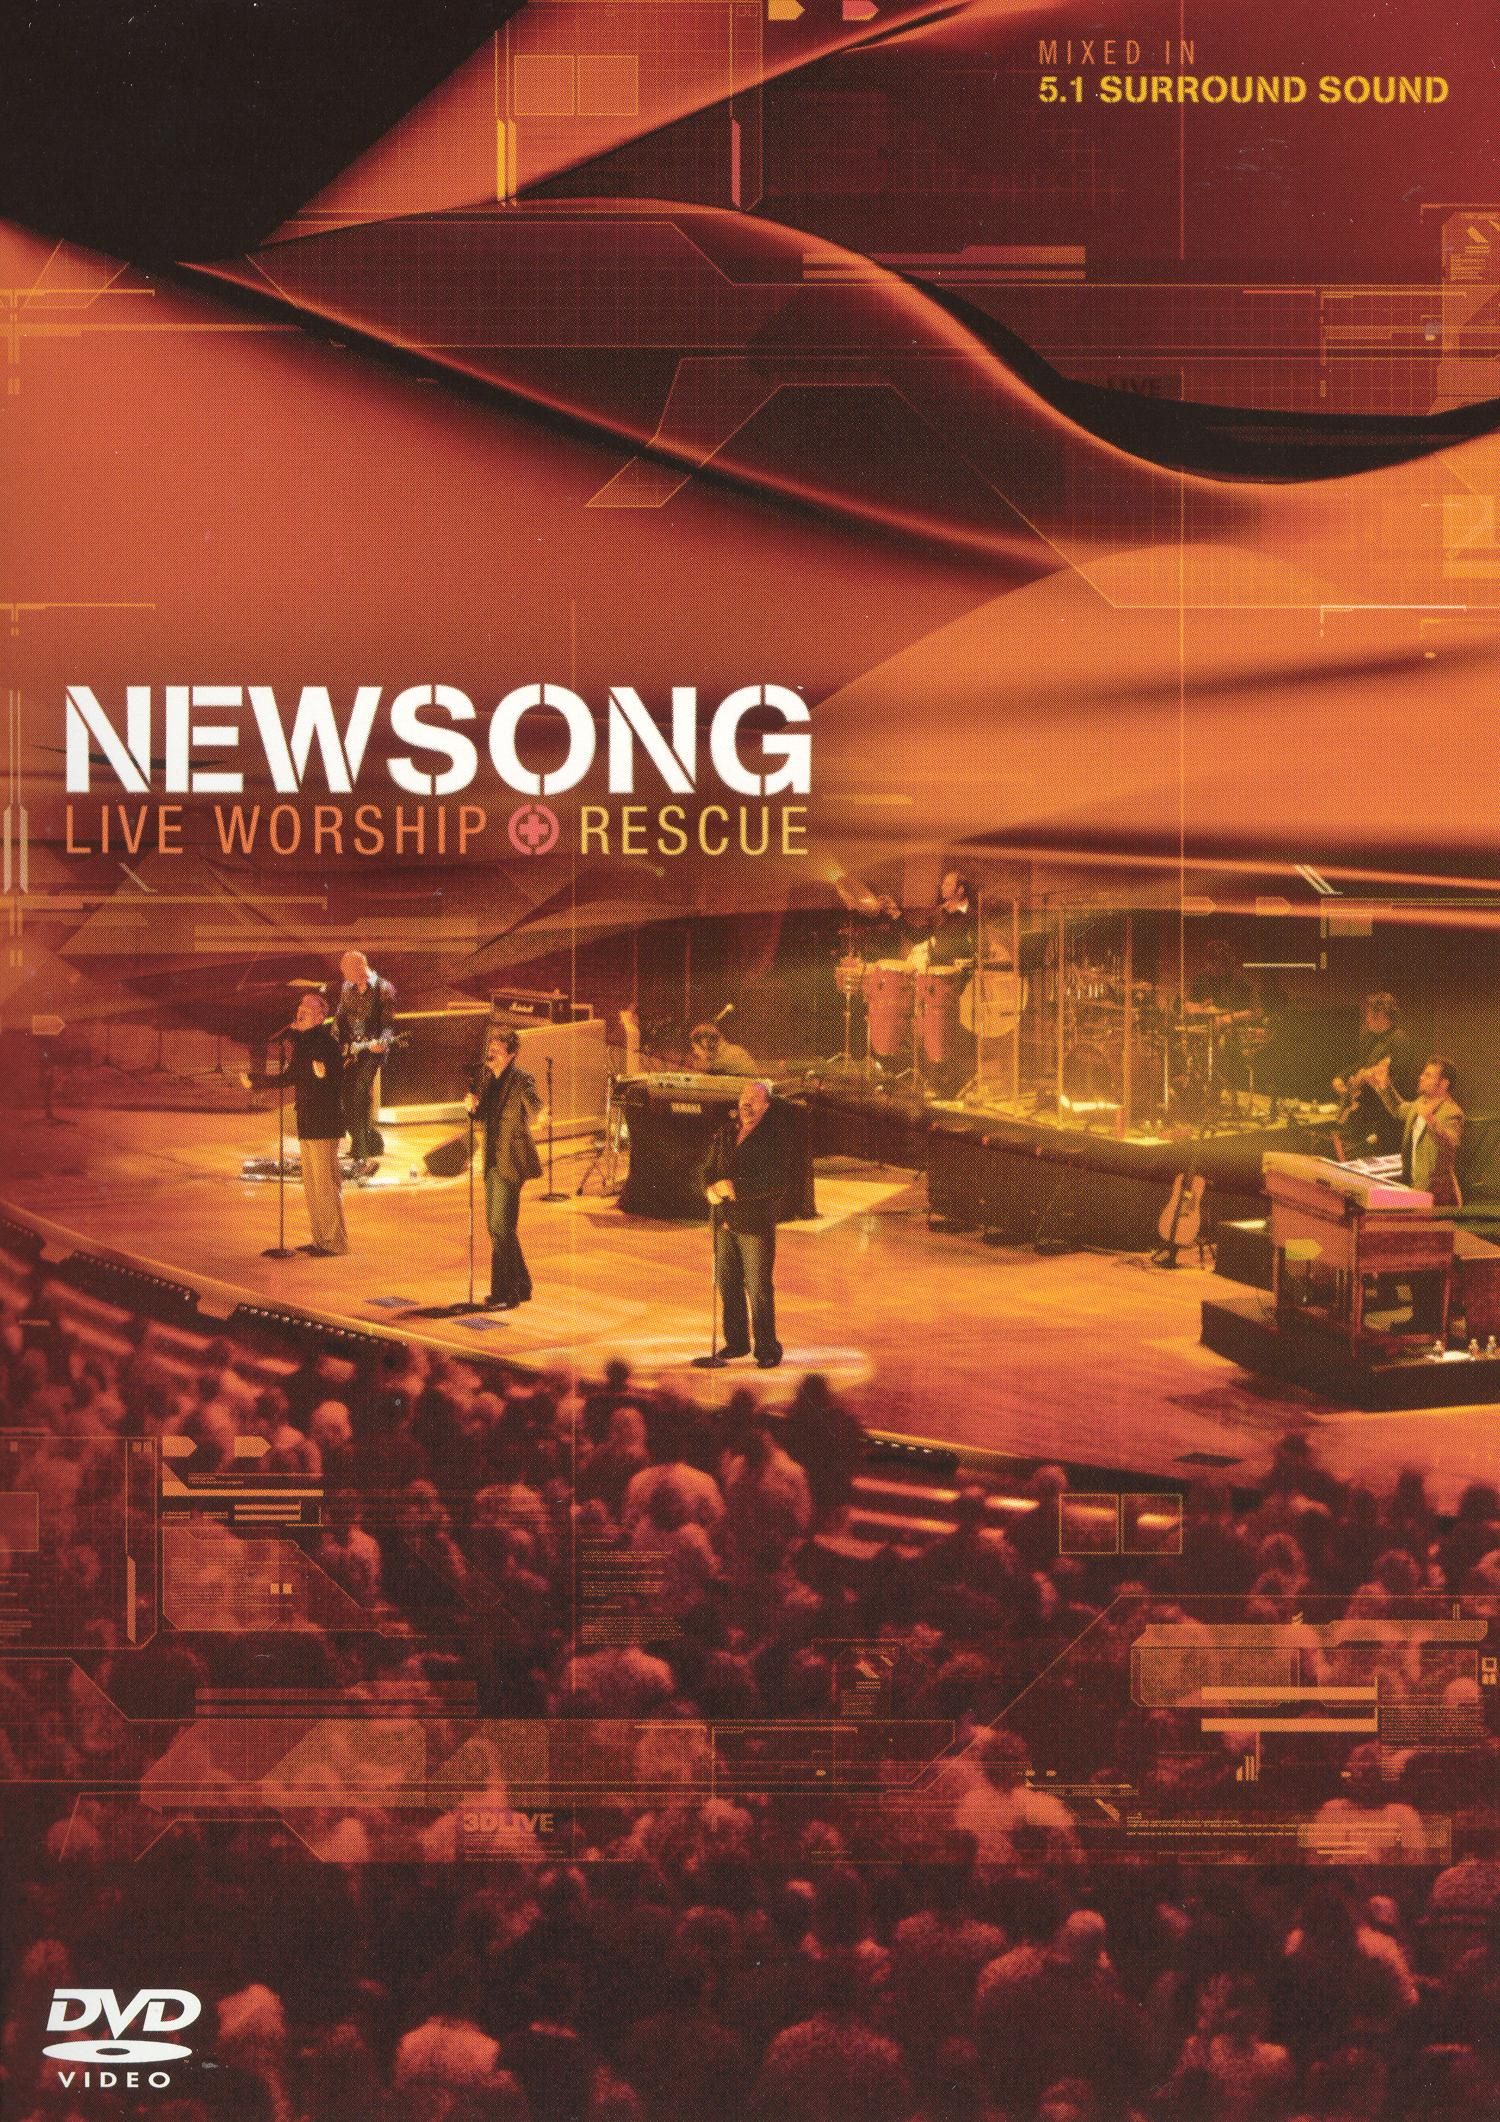 Newsong: Rescue - Live Worship